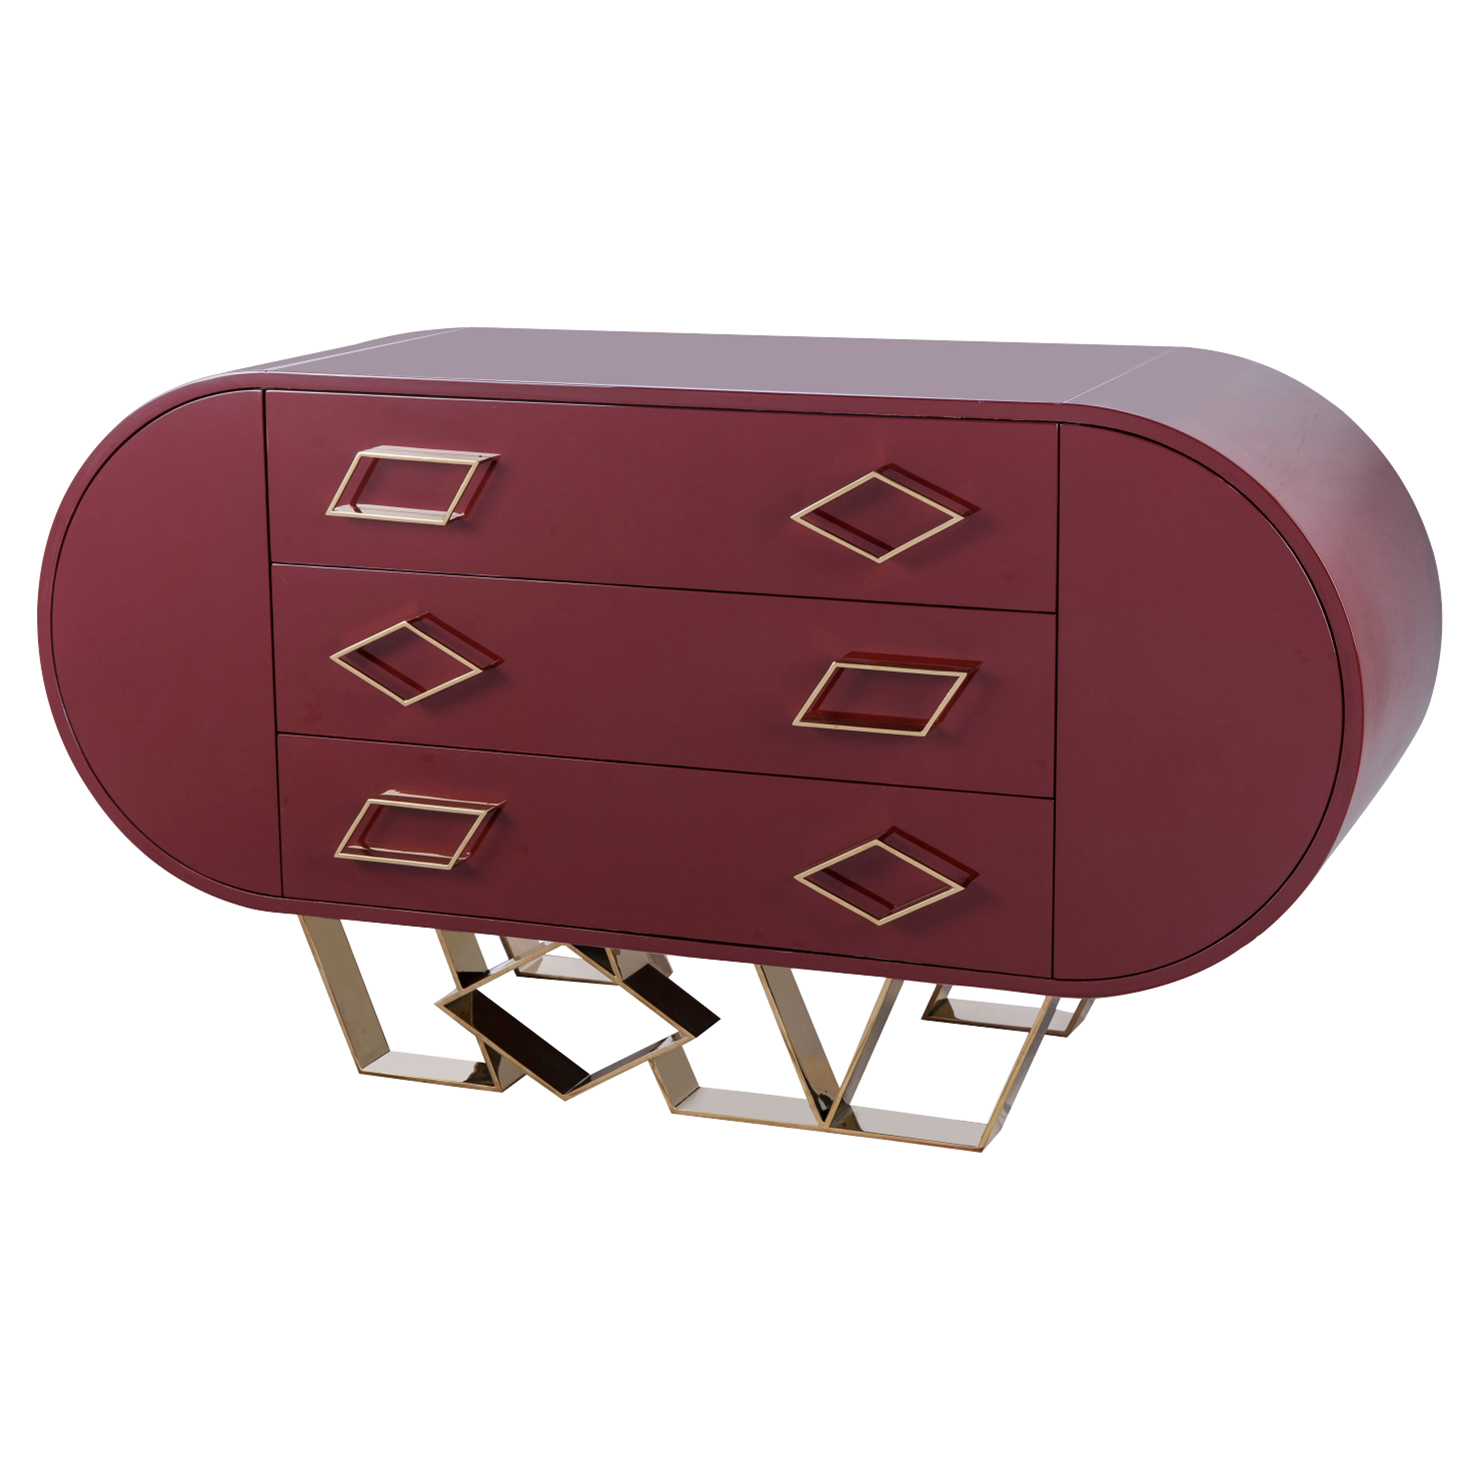 Kelly Hoppen Sting Modern High Gloss Burgundy Brass Accent Rounded Credenza